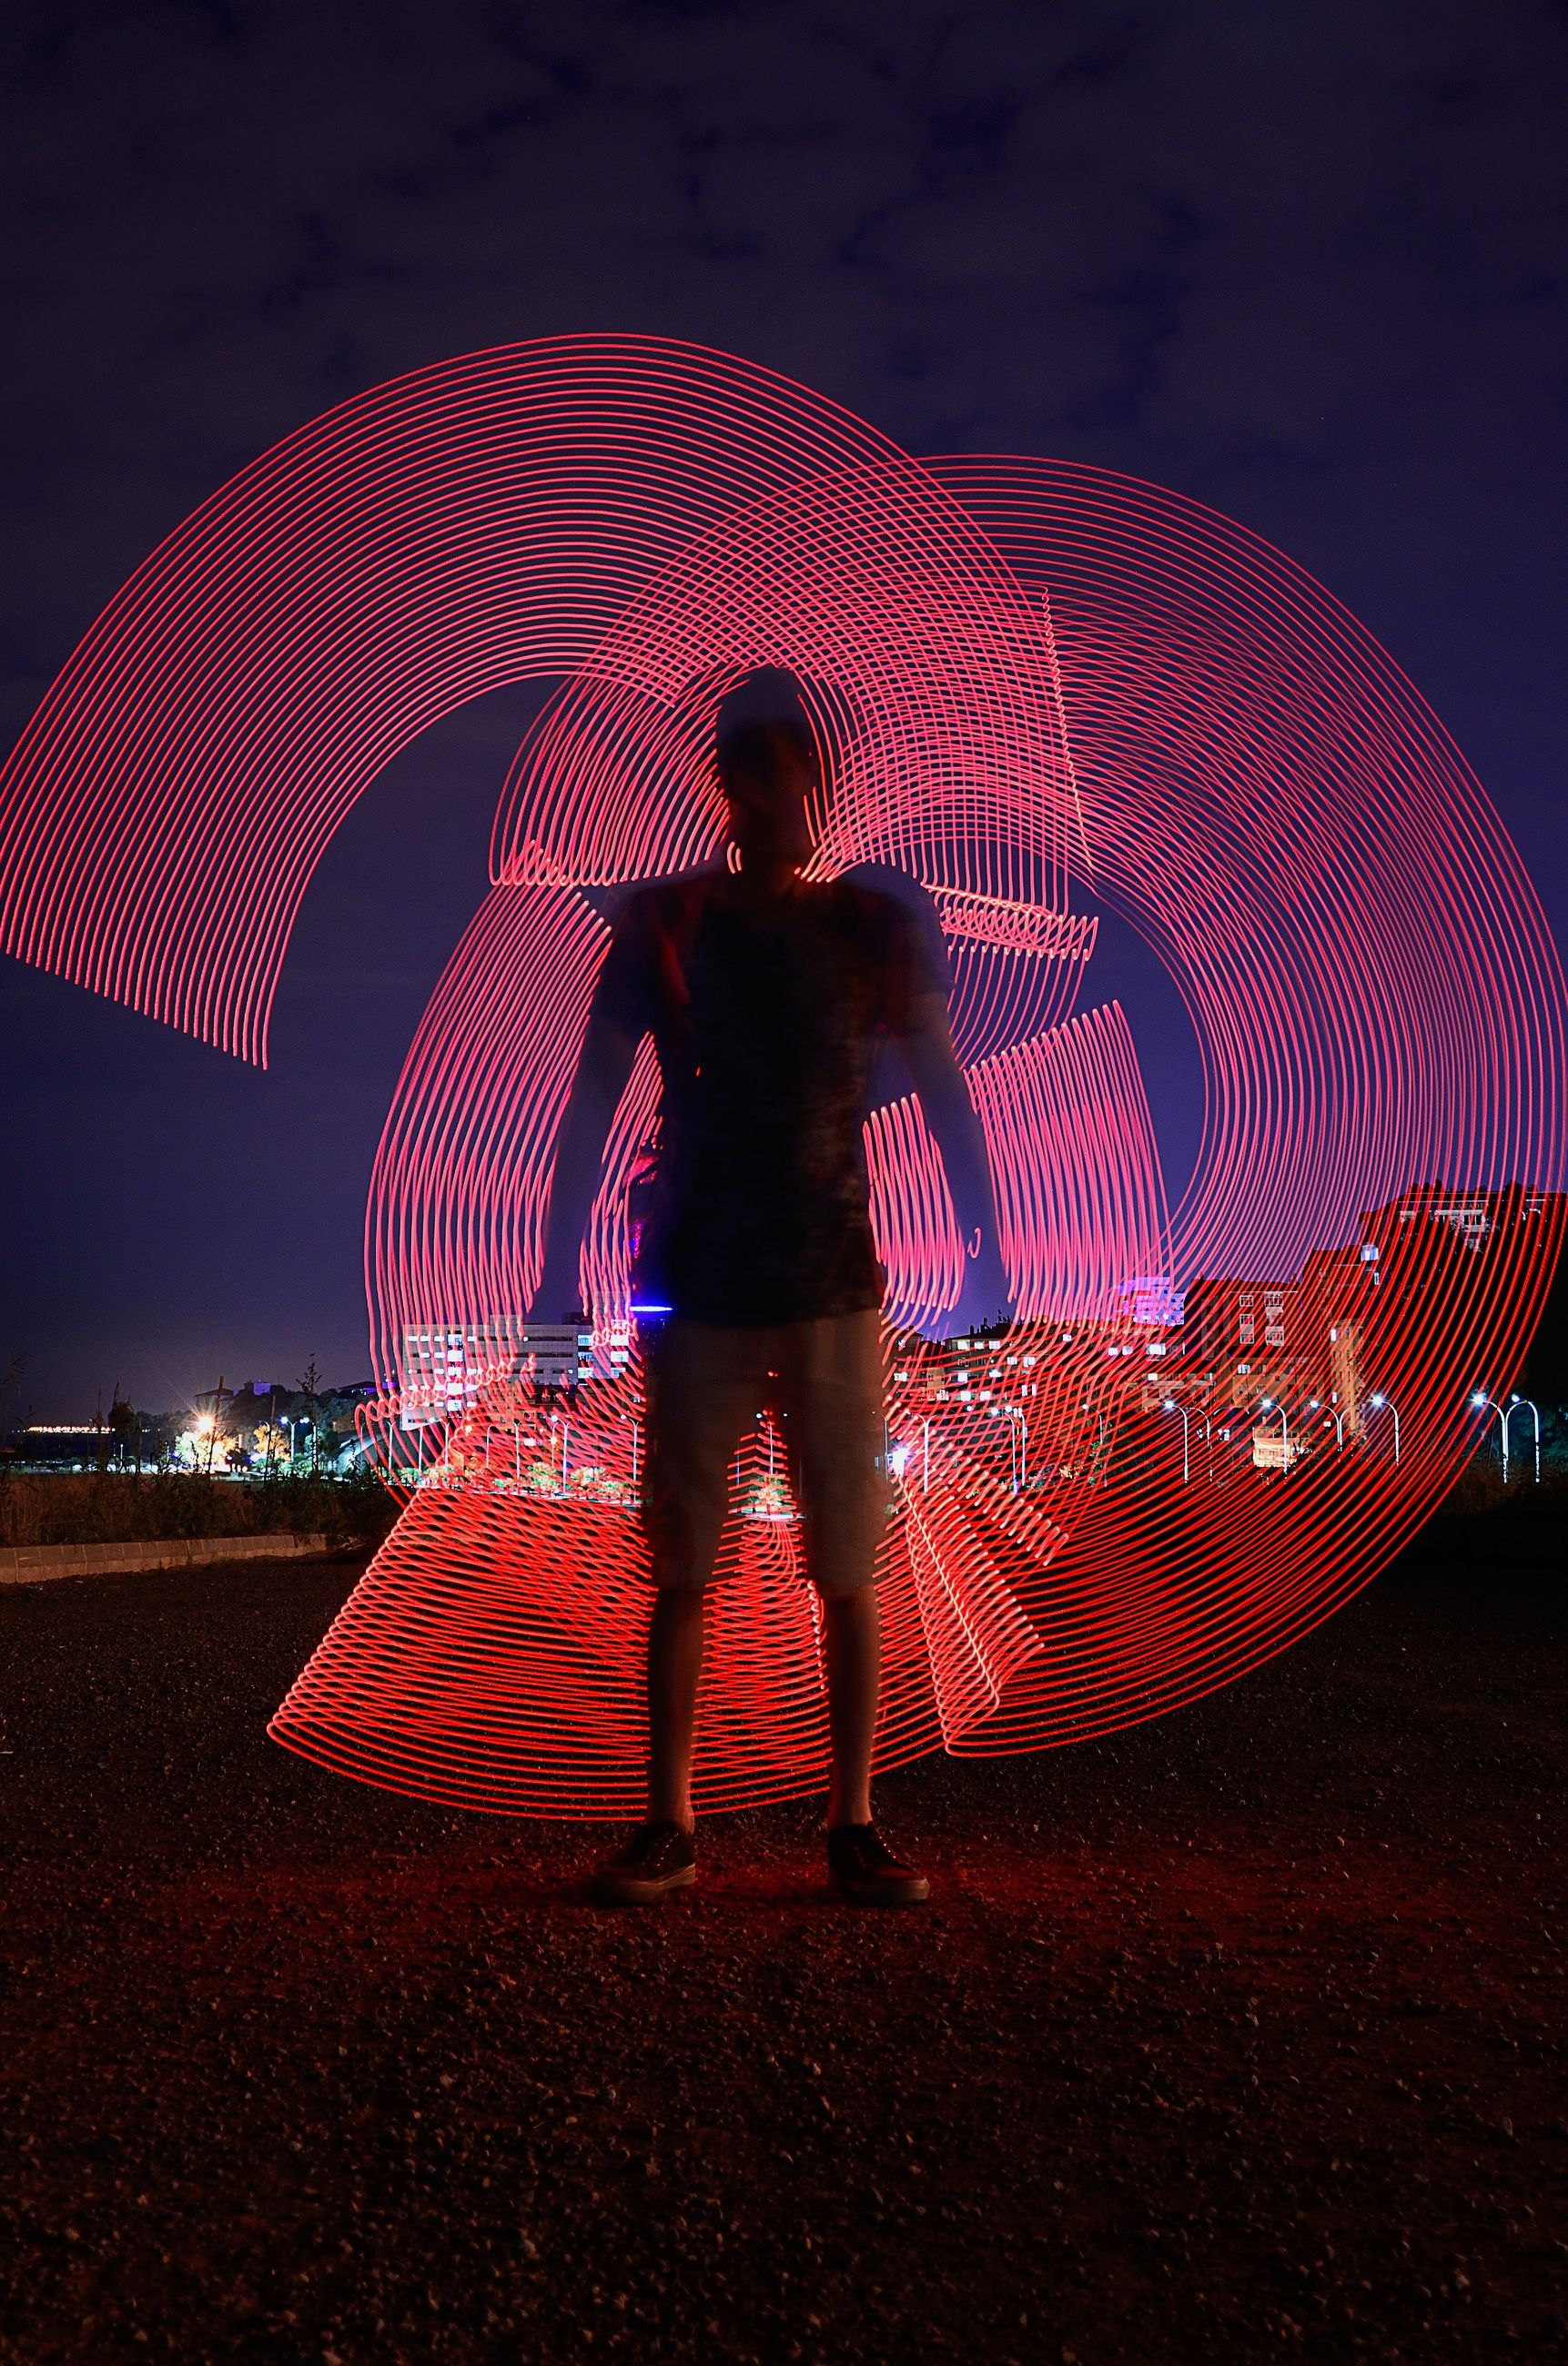 one person, real people, full length, lifestyles, standing, umbrella, leisure activity, men, illuminated, night, motion, rear view, nature, red, sky, long exposure, blurred motion, land, outdoors